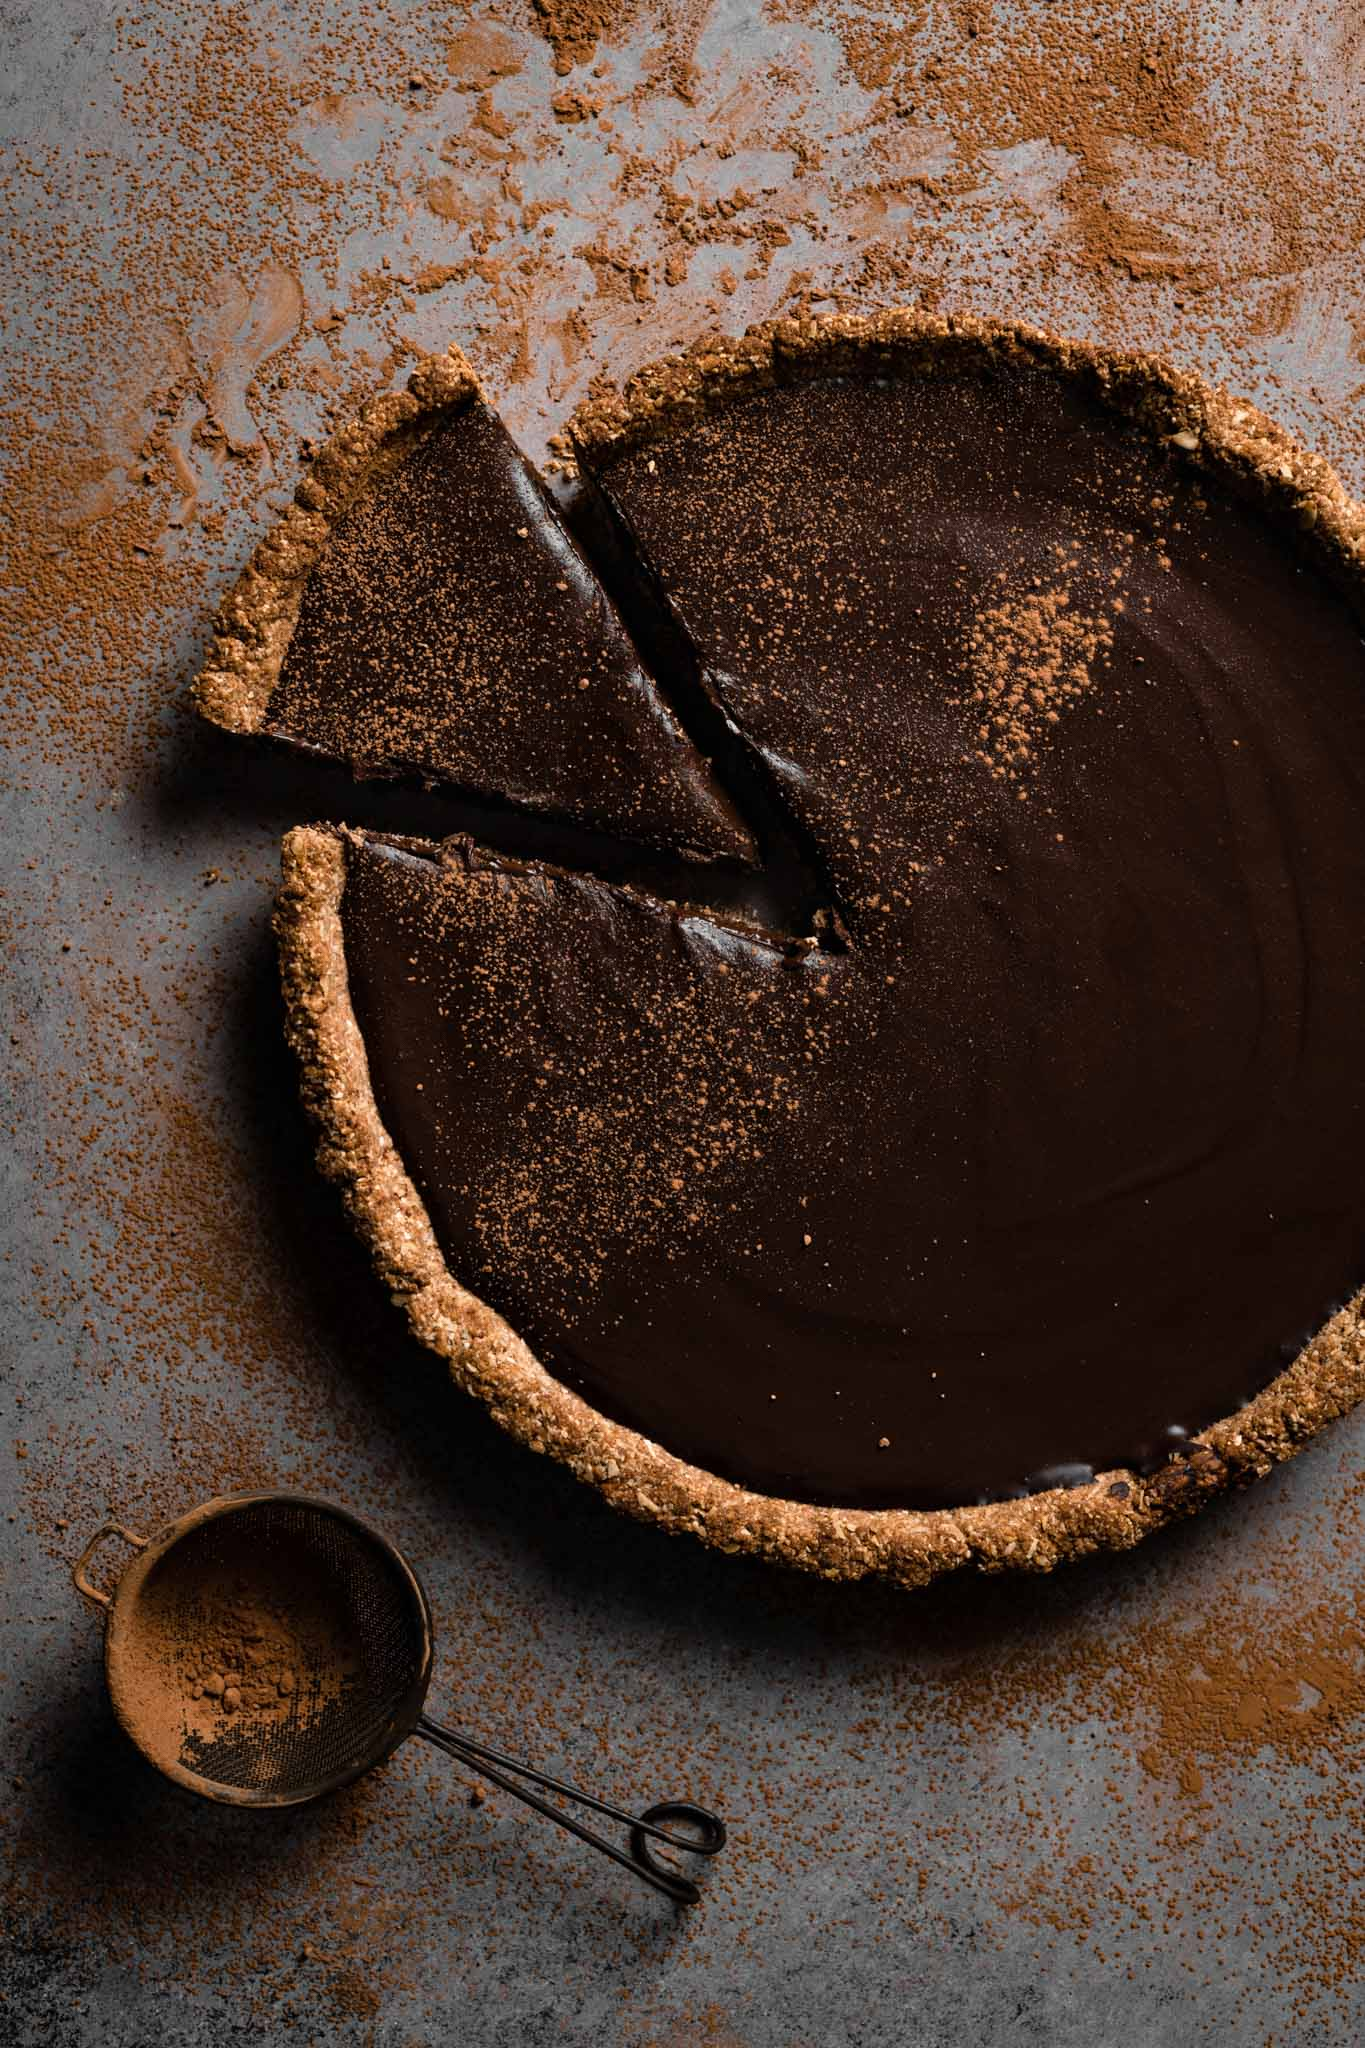 Chocolate tart with chocolate crust sliced.